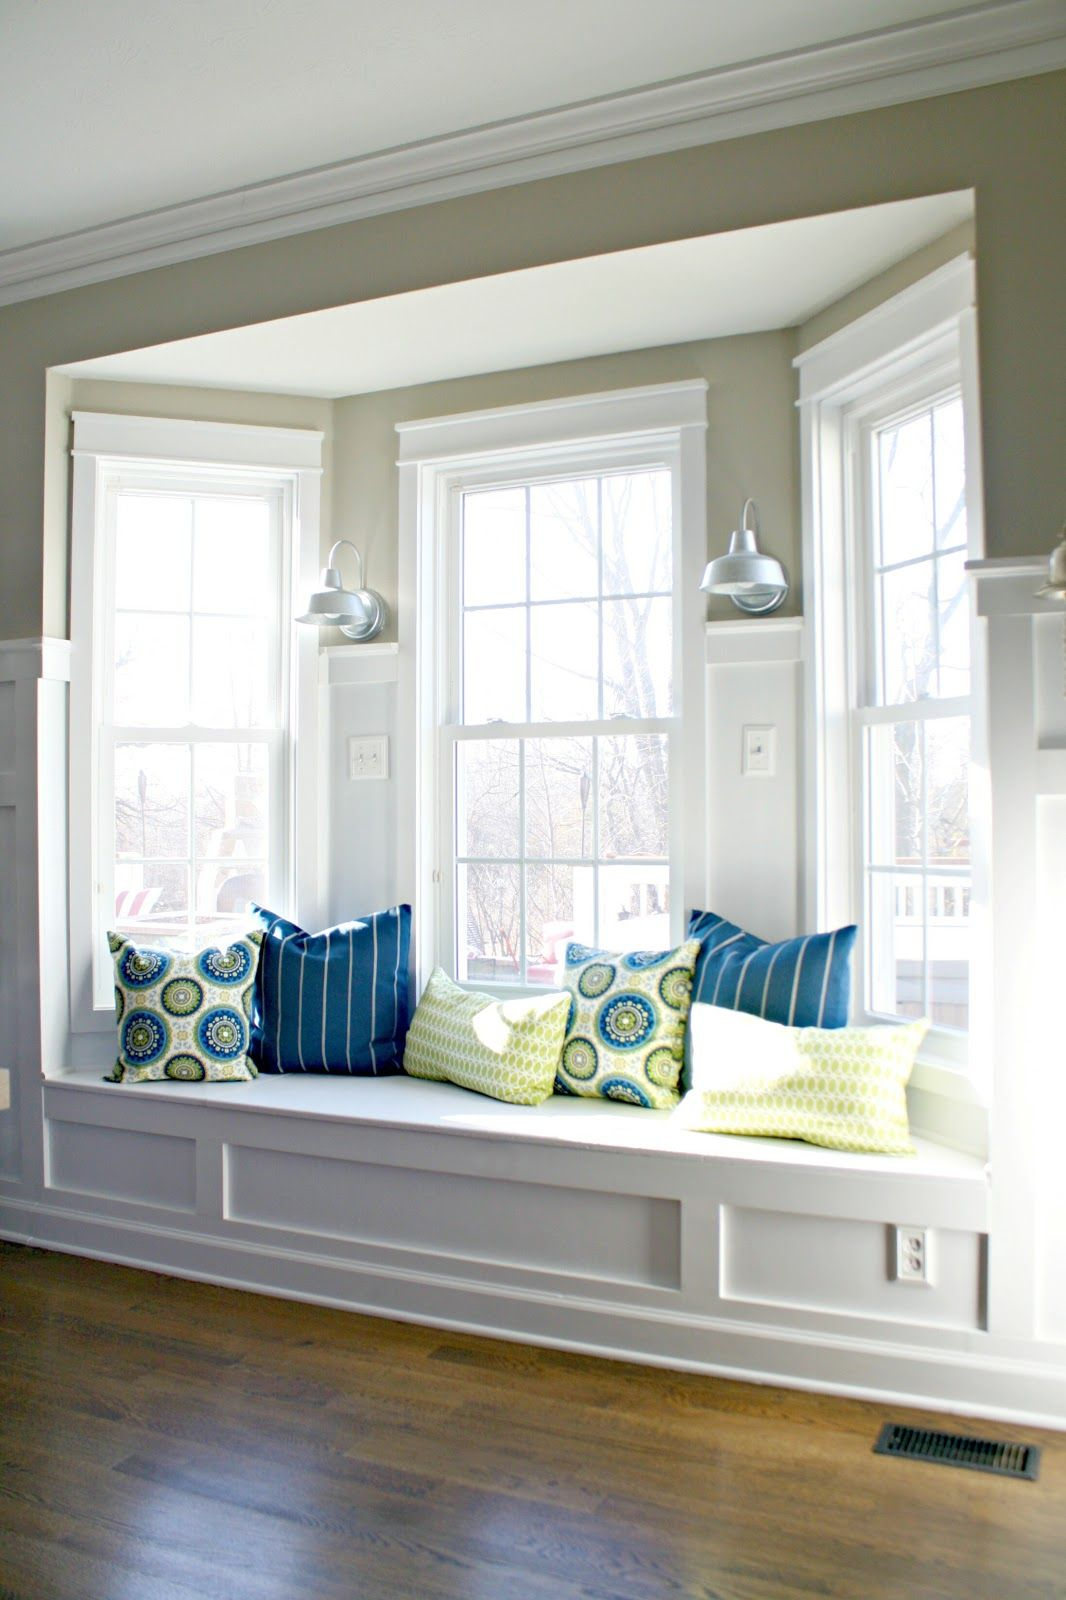 Living room bay window painted white | muebles decorados | Pinterest ...